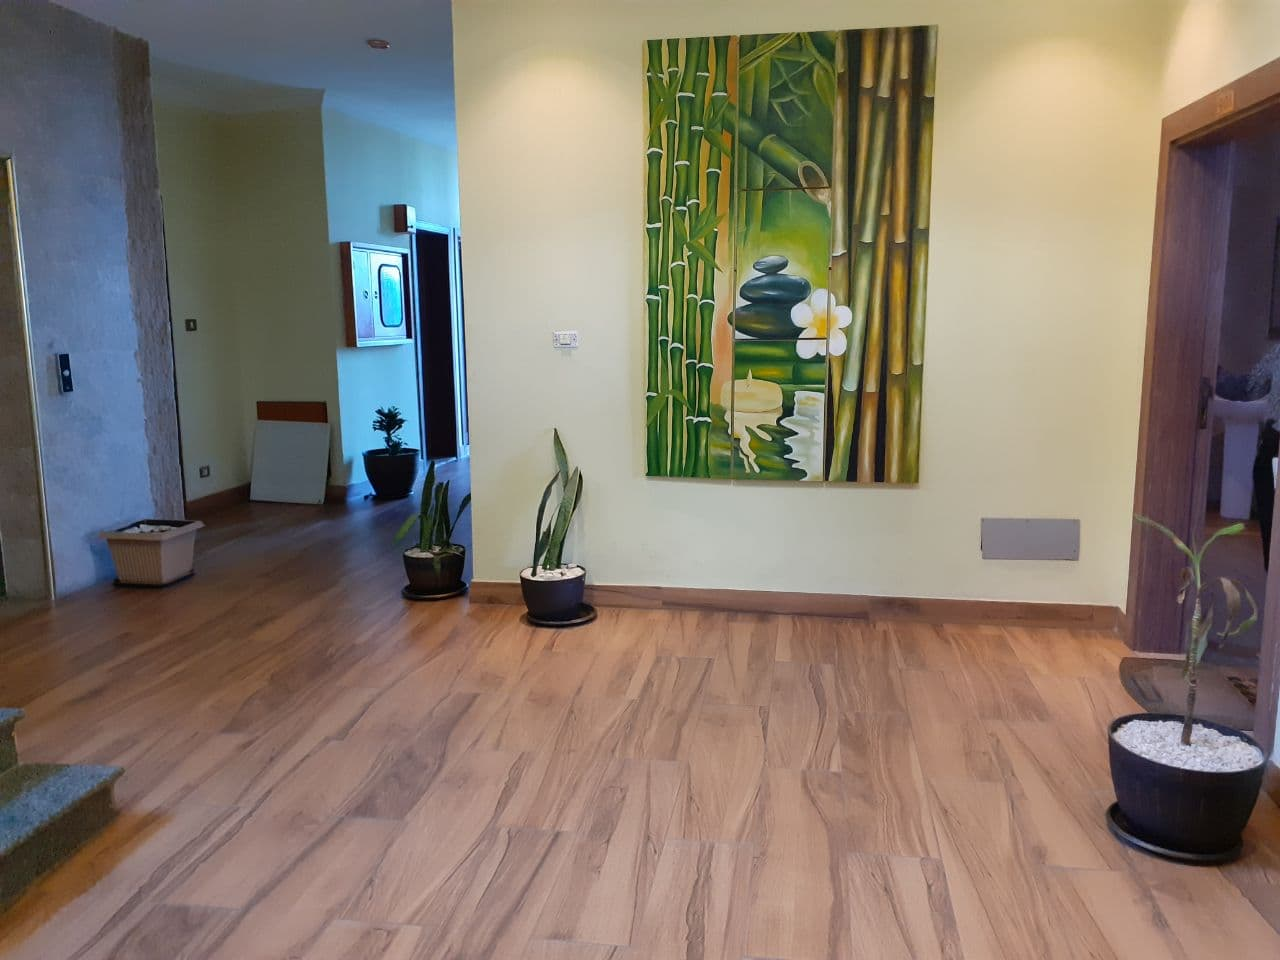 Marvelous fully furnished Two bedroom Apartment in Kassanchis for rent